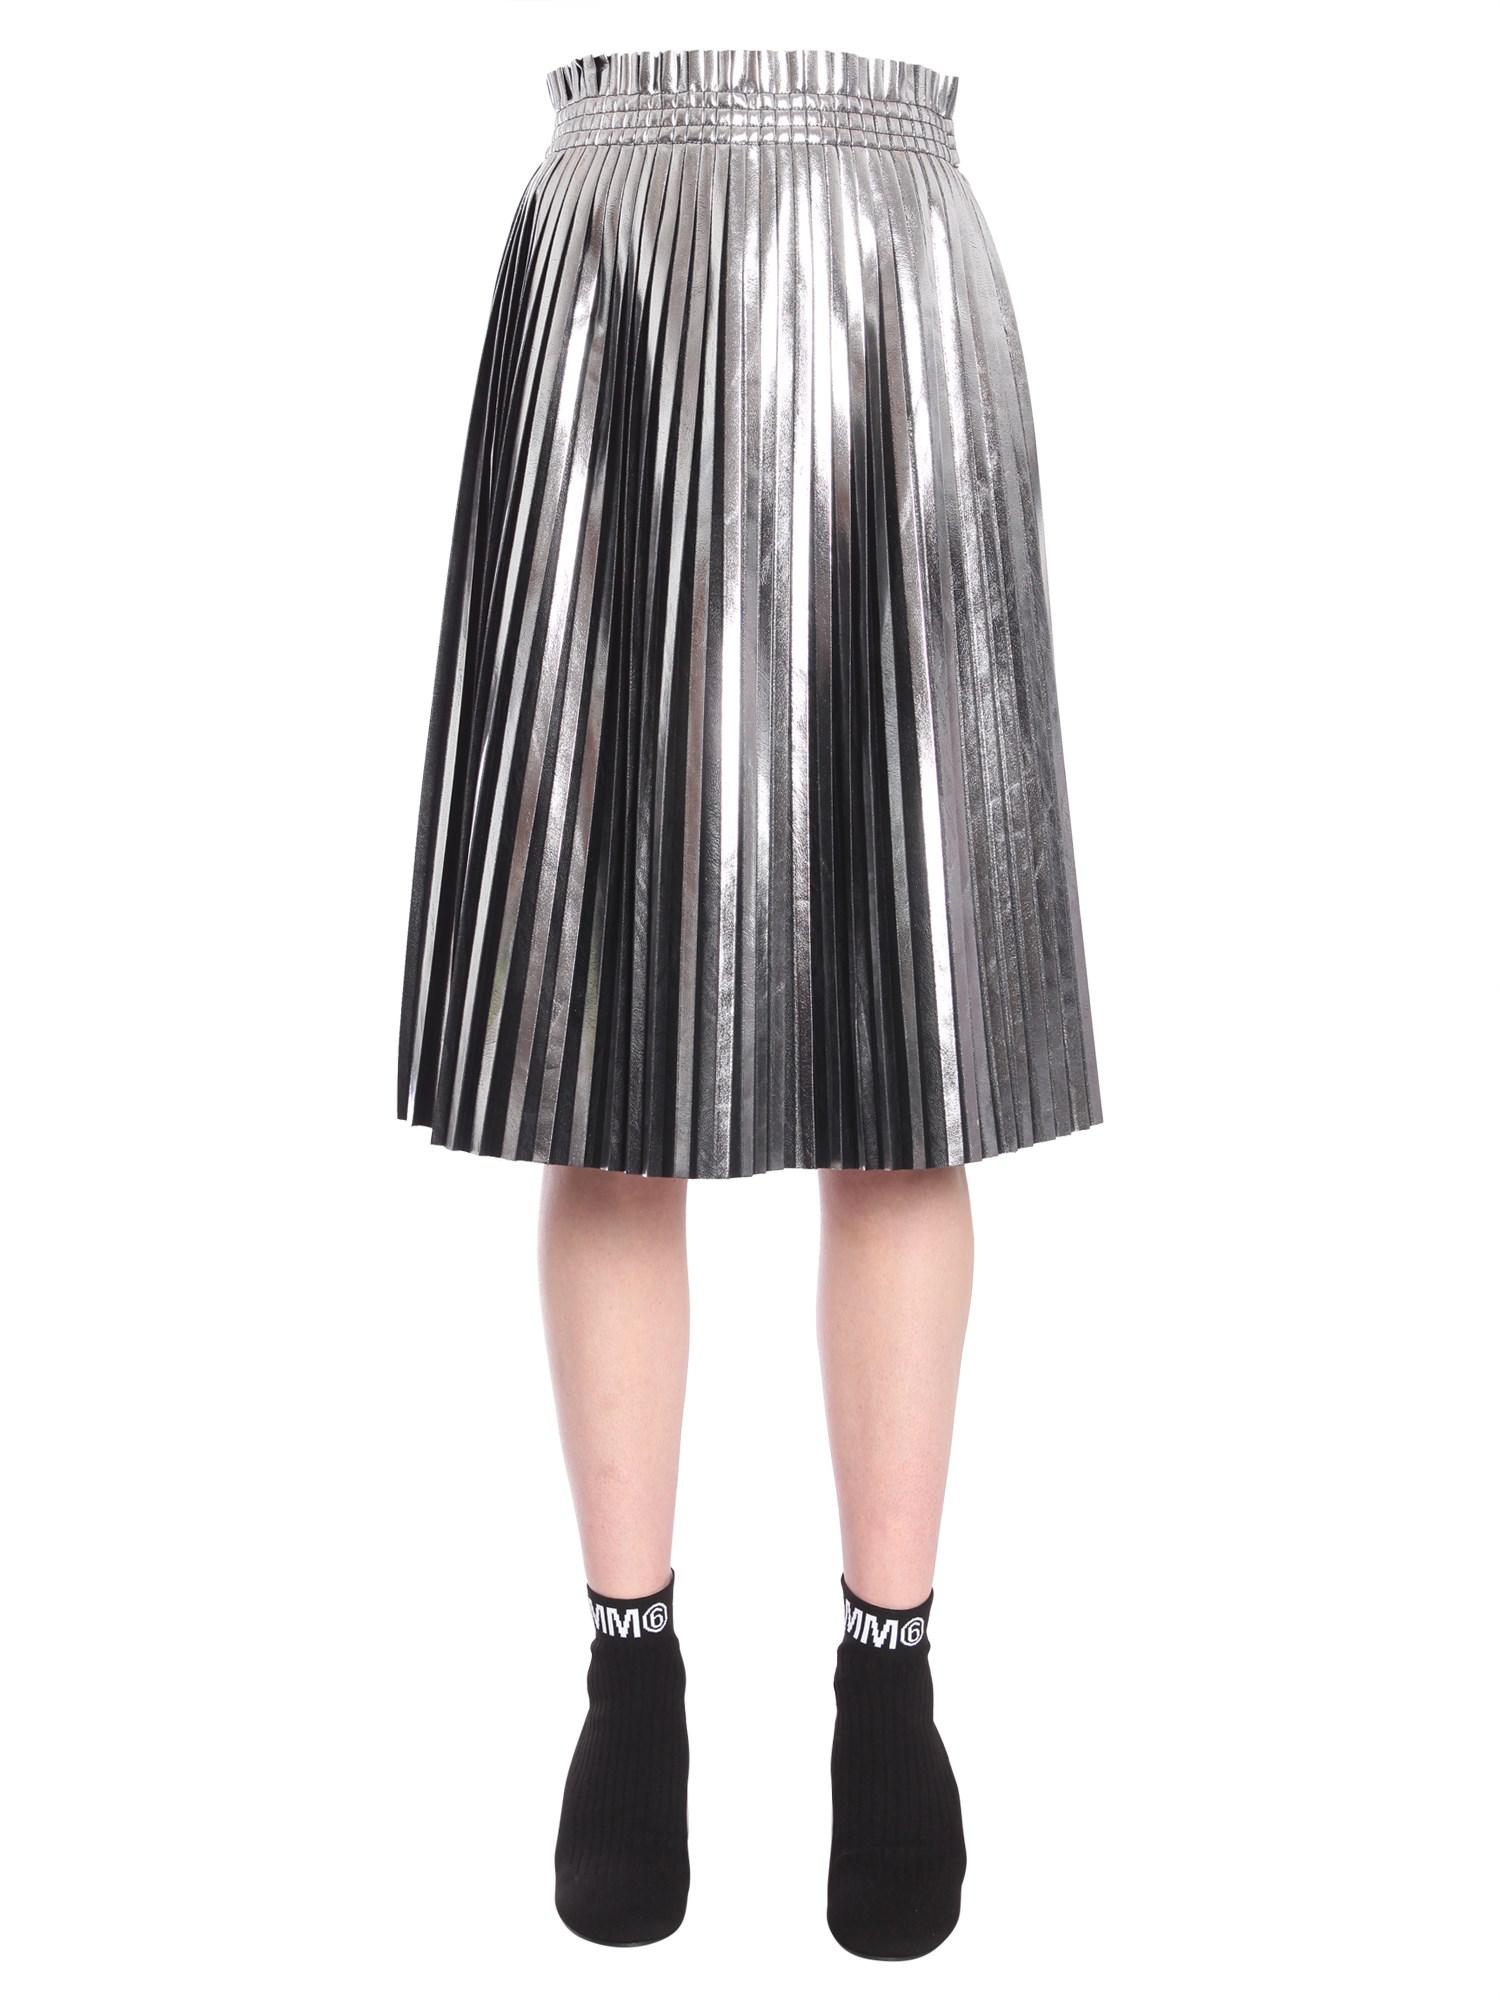 Margiela By Leather Midi Lyst Mm6 Dress Martin Eco Pleated Maison UMpGSVLqz